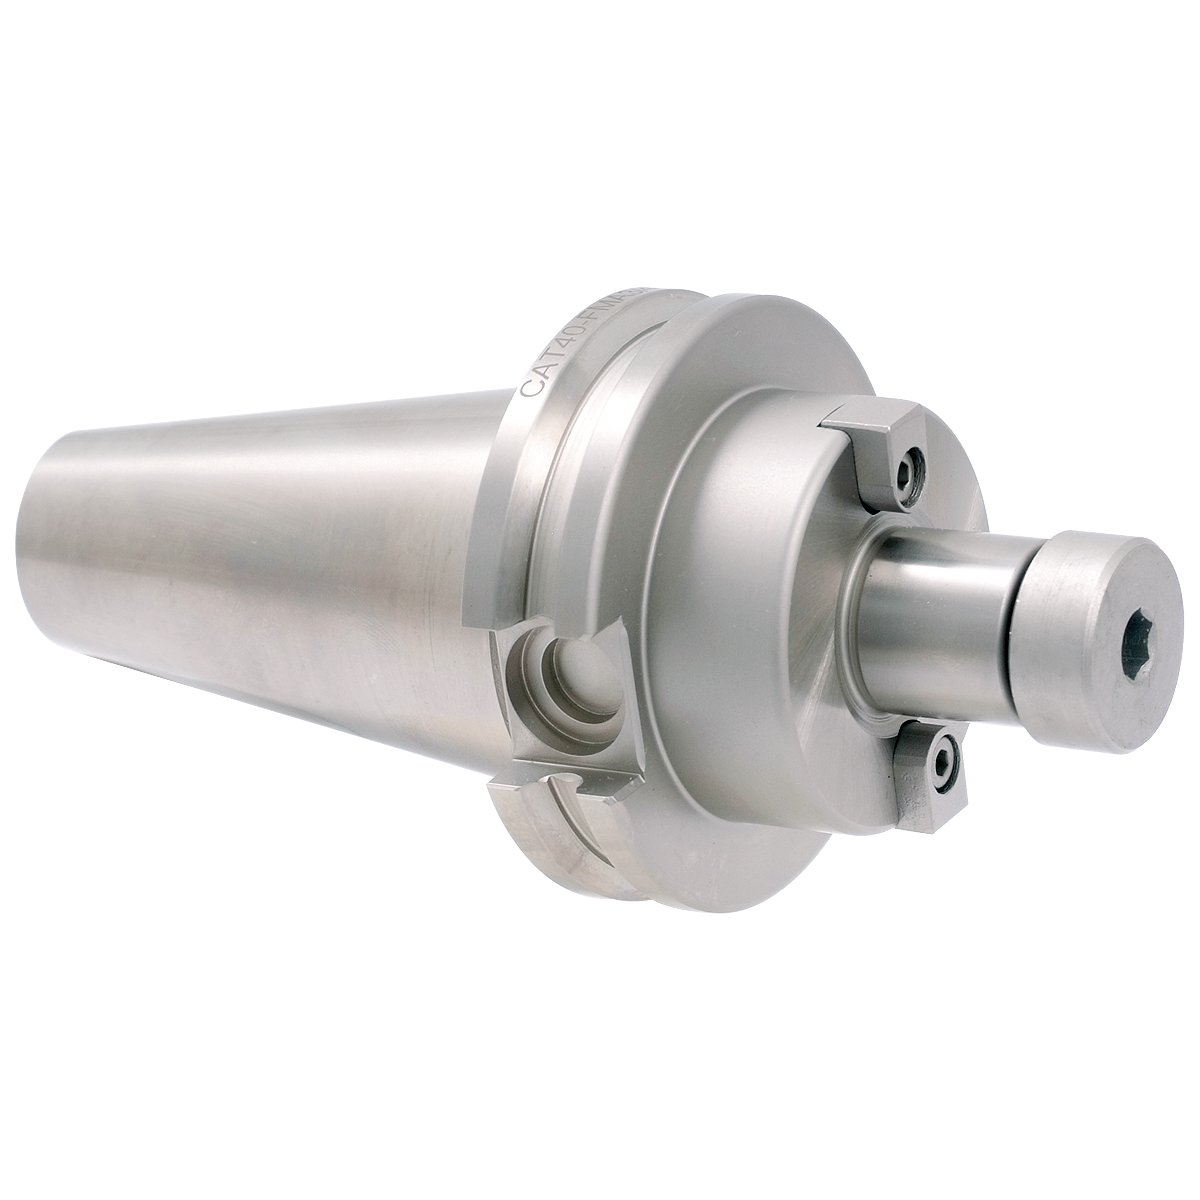 Pro Series by HHIP 3901-4255 3/4 x Cat 40 V-Flange Shell End Mill Arbor